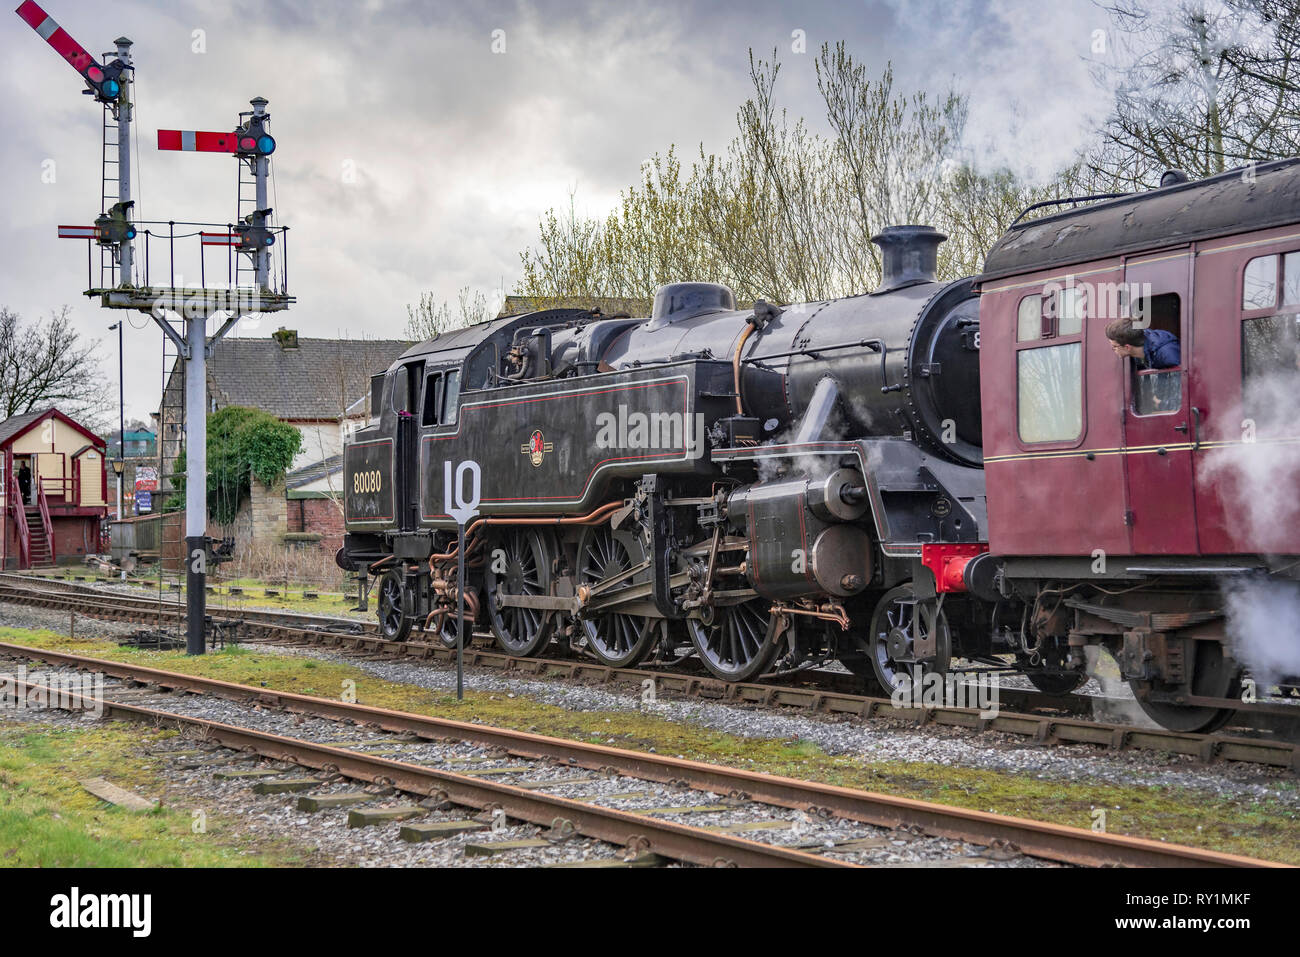 Esat Lancashire railway Spring steam gala 2019. Stock Photo